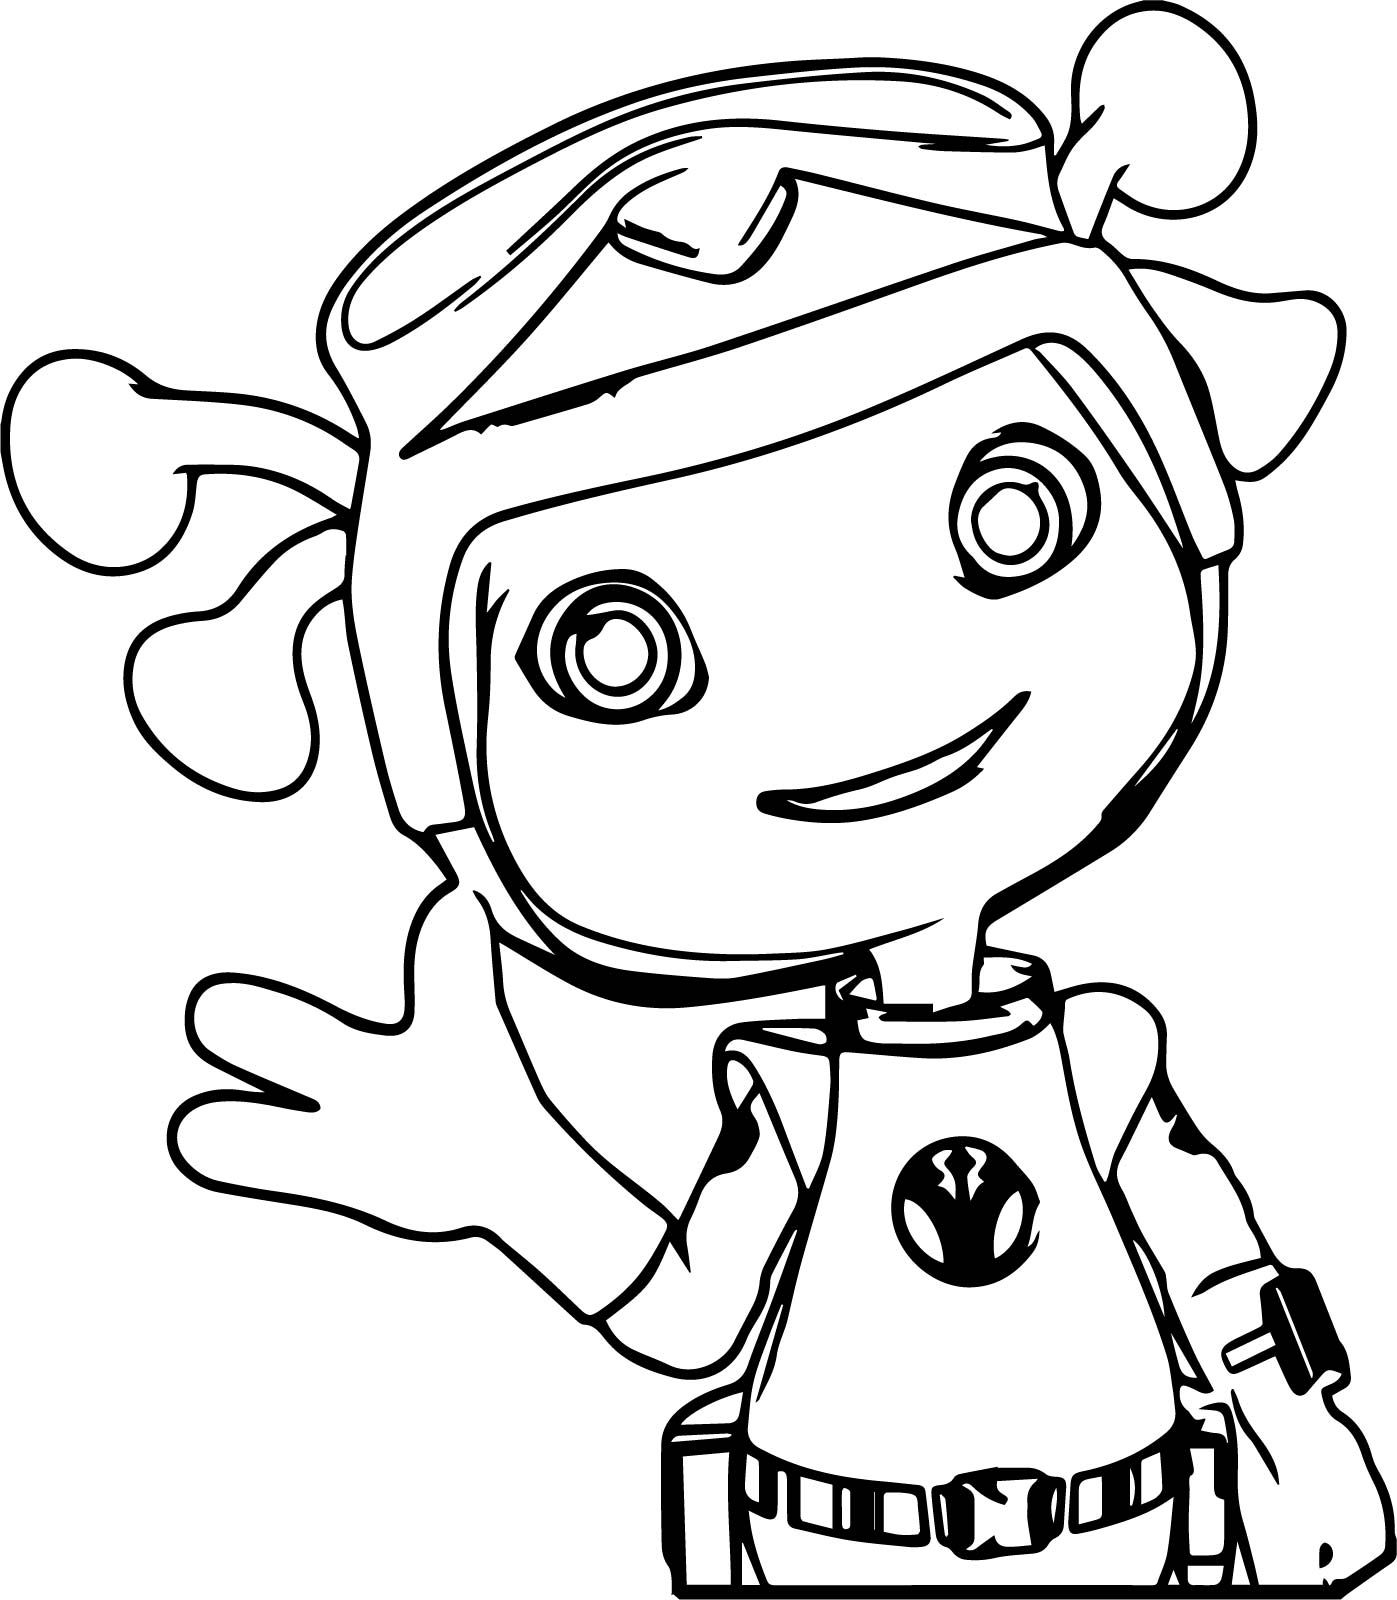 Cool Floogals Girl Coloring Page Coloring Pages For Girls Coloring Pages Free Printable Coloring Pages